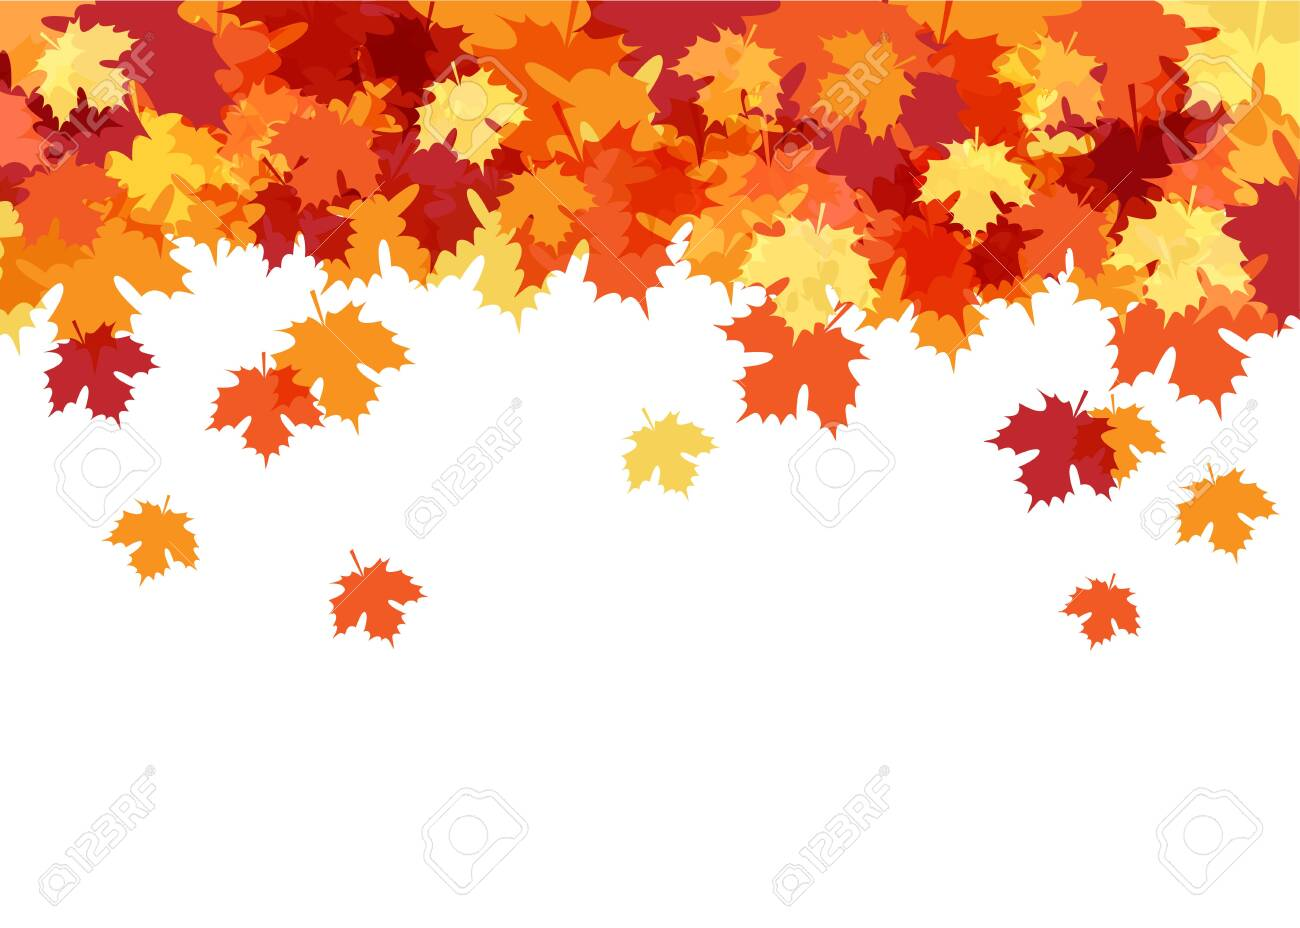 Hello Autumn Card with Maple Leaves Decorative Background - 141923328